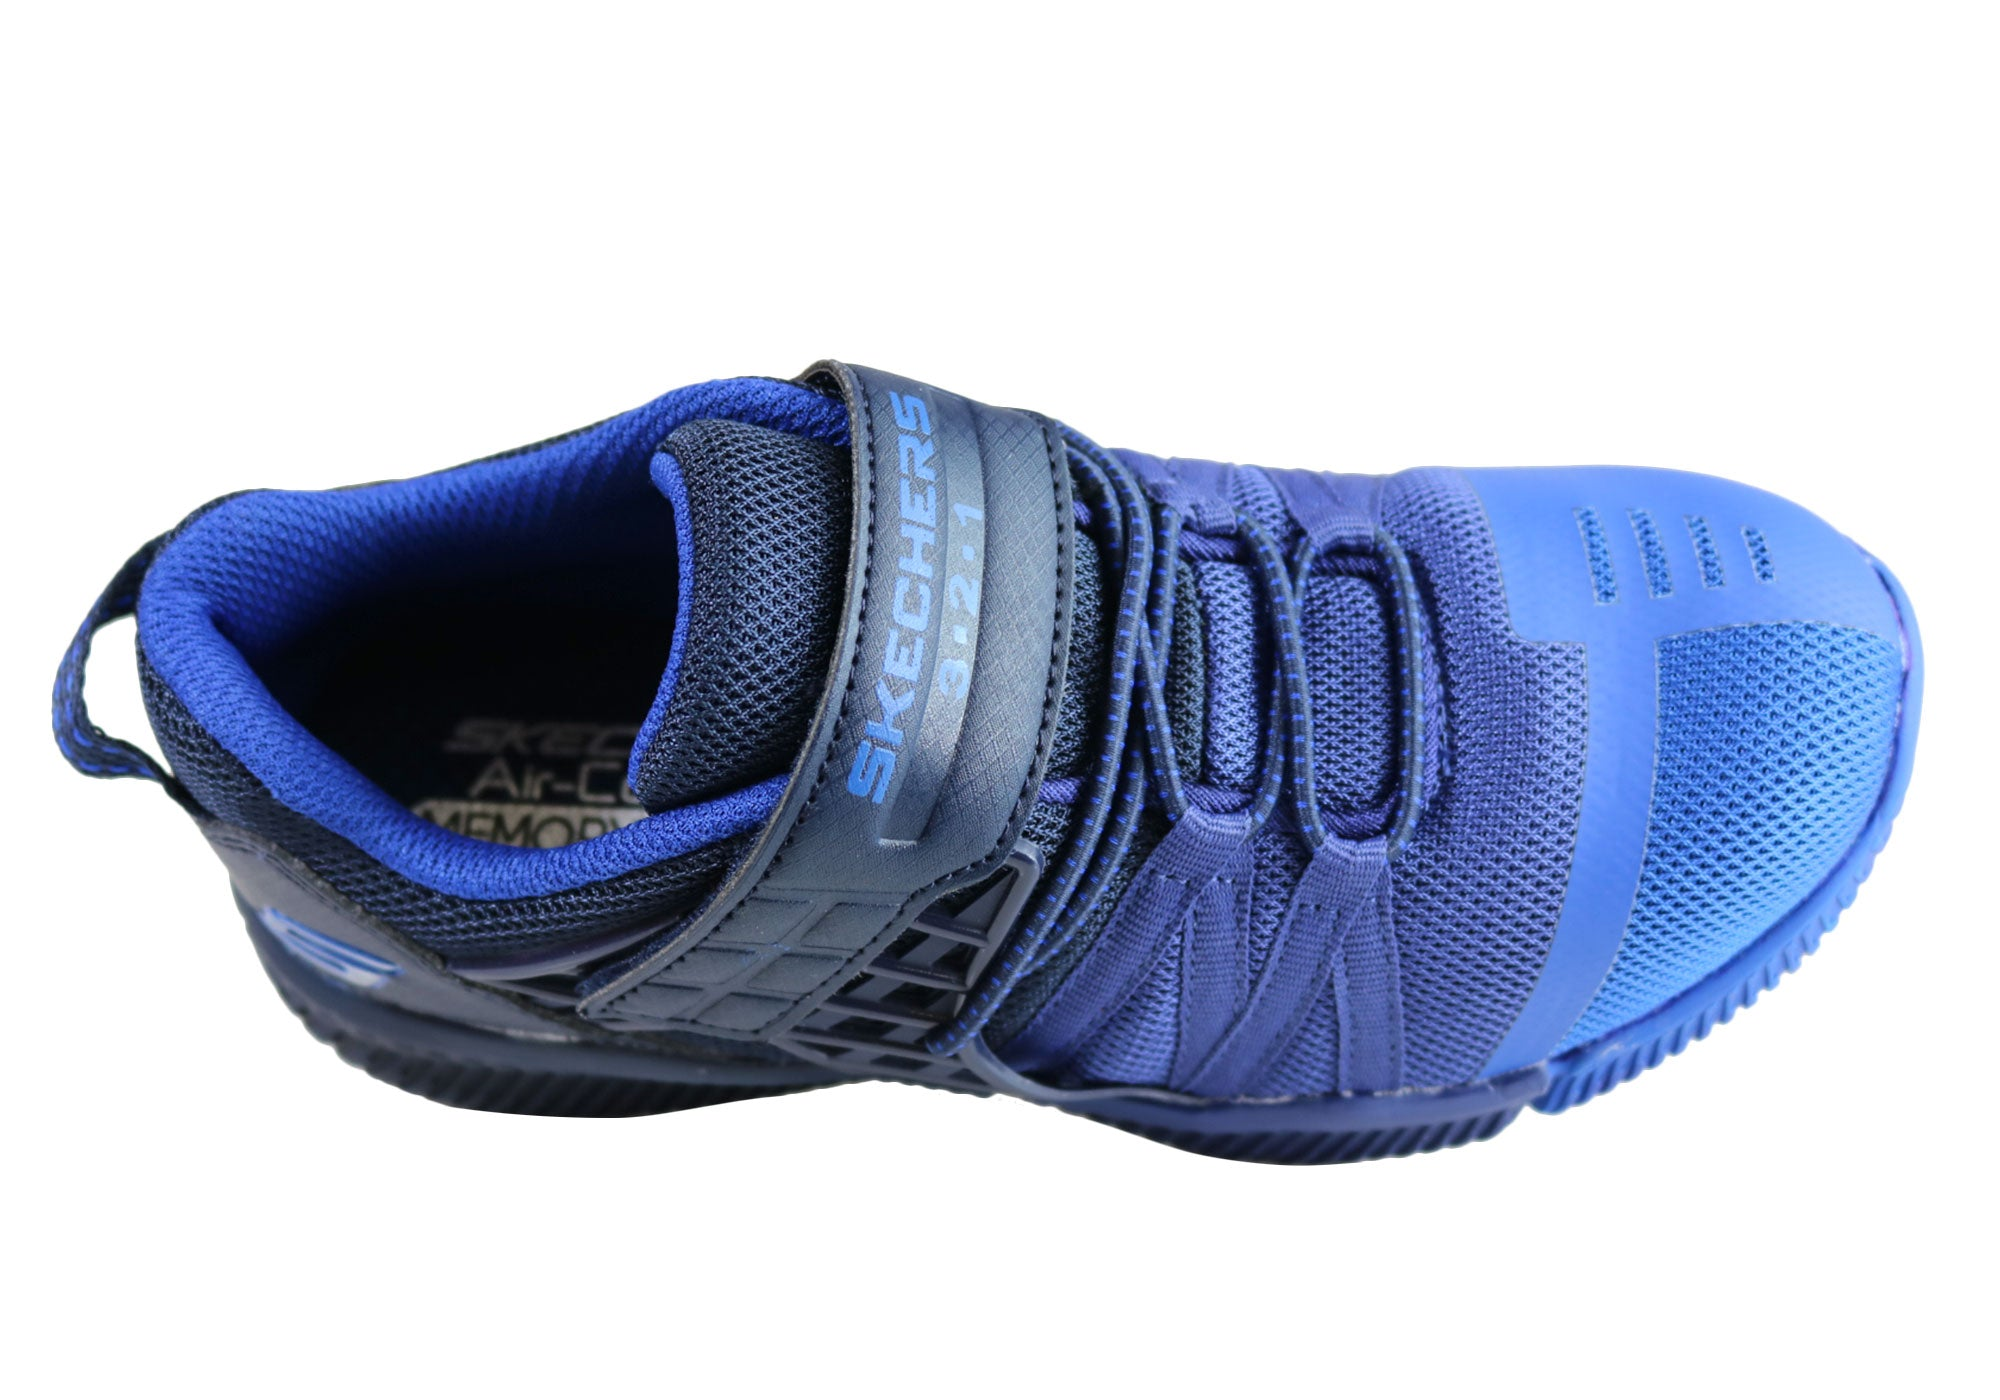 edf9dc46f98c NEW SKECHERS BOYS KIDS ISO FLEX COMFORTABLE SNEAKERS ATHLETIC SHOES ...